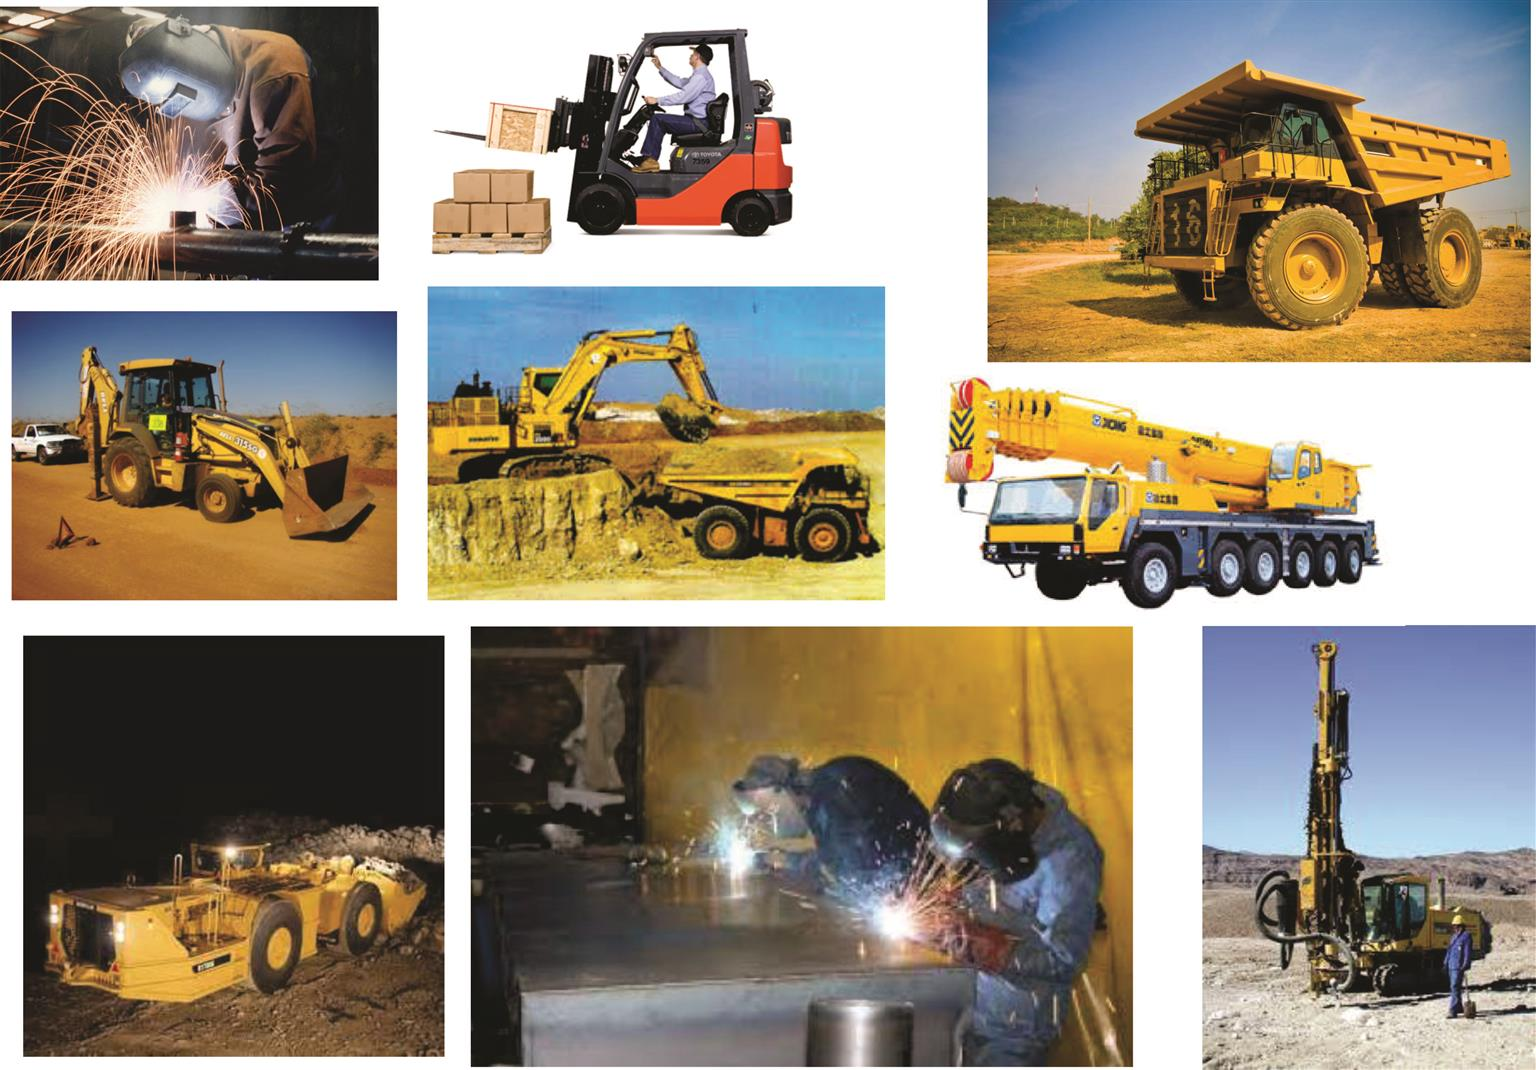 WELDING ROAD ROLLER AND OTHER MACHINE TRAINING.